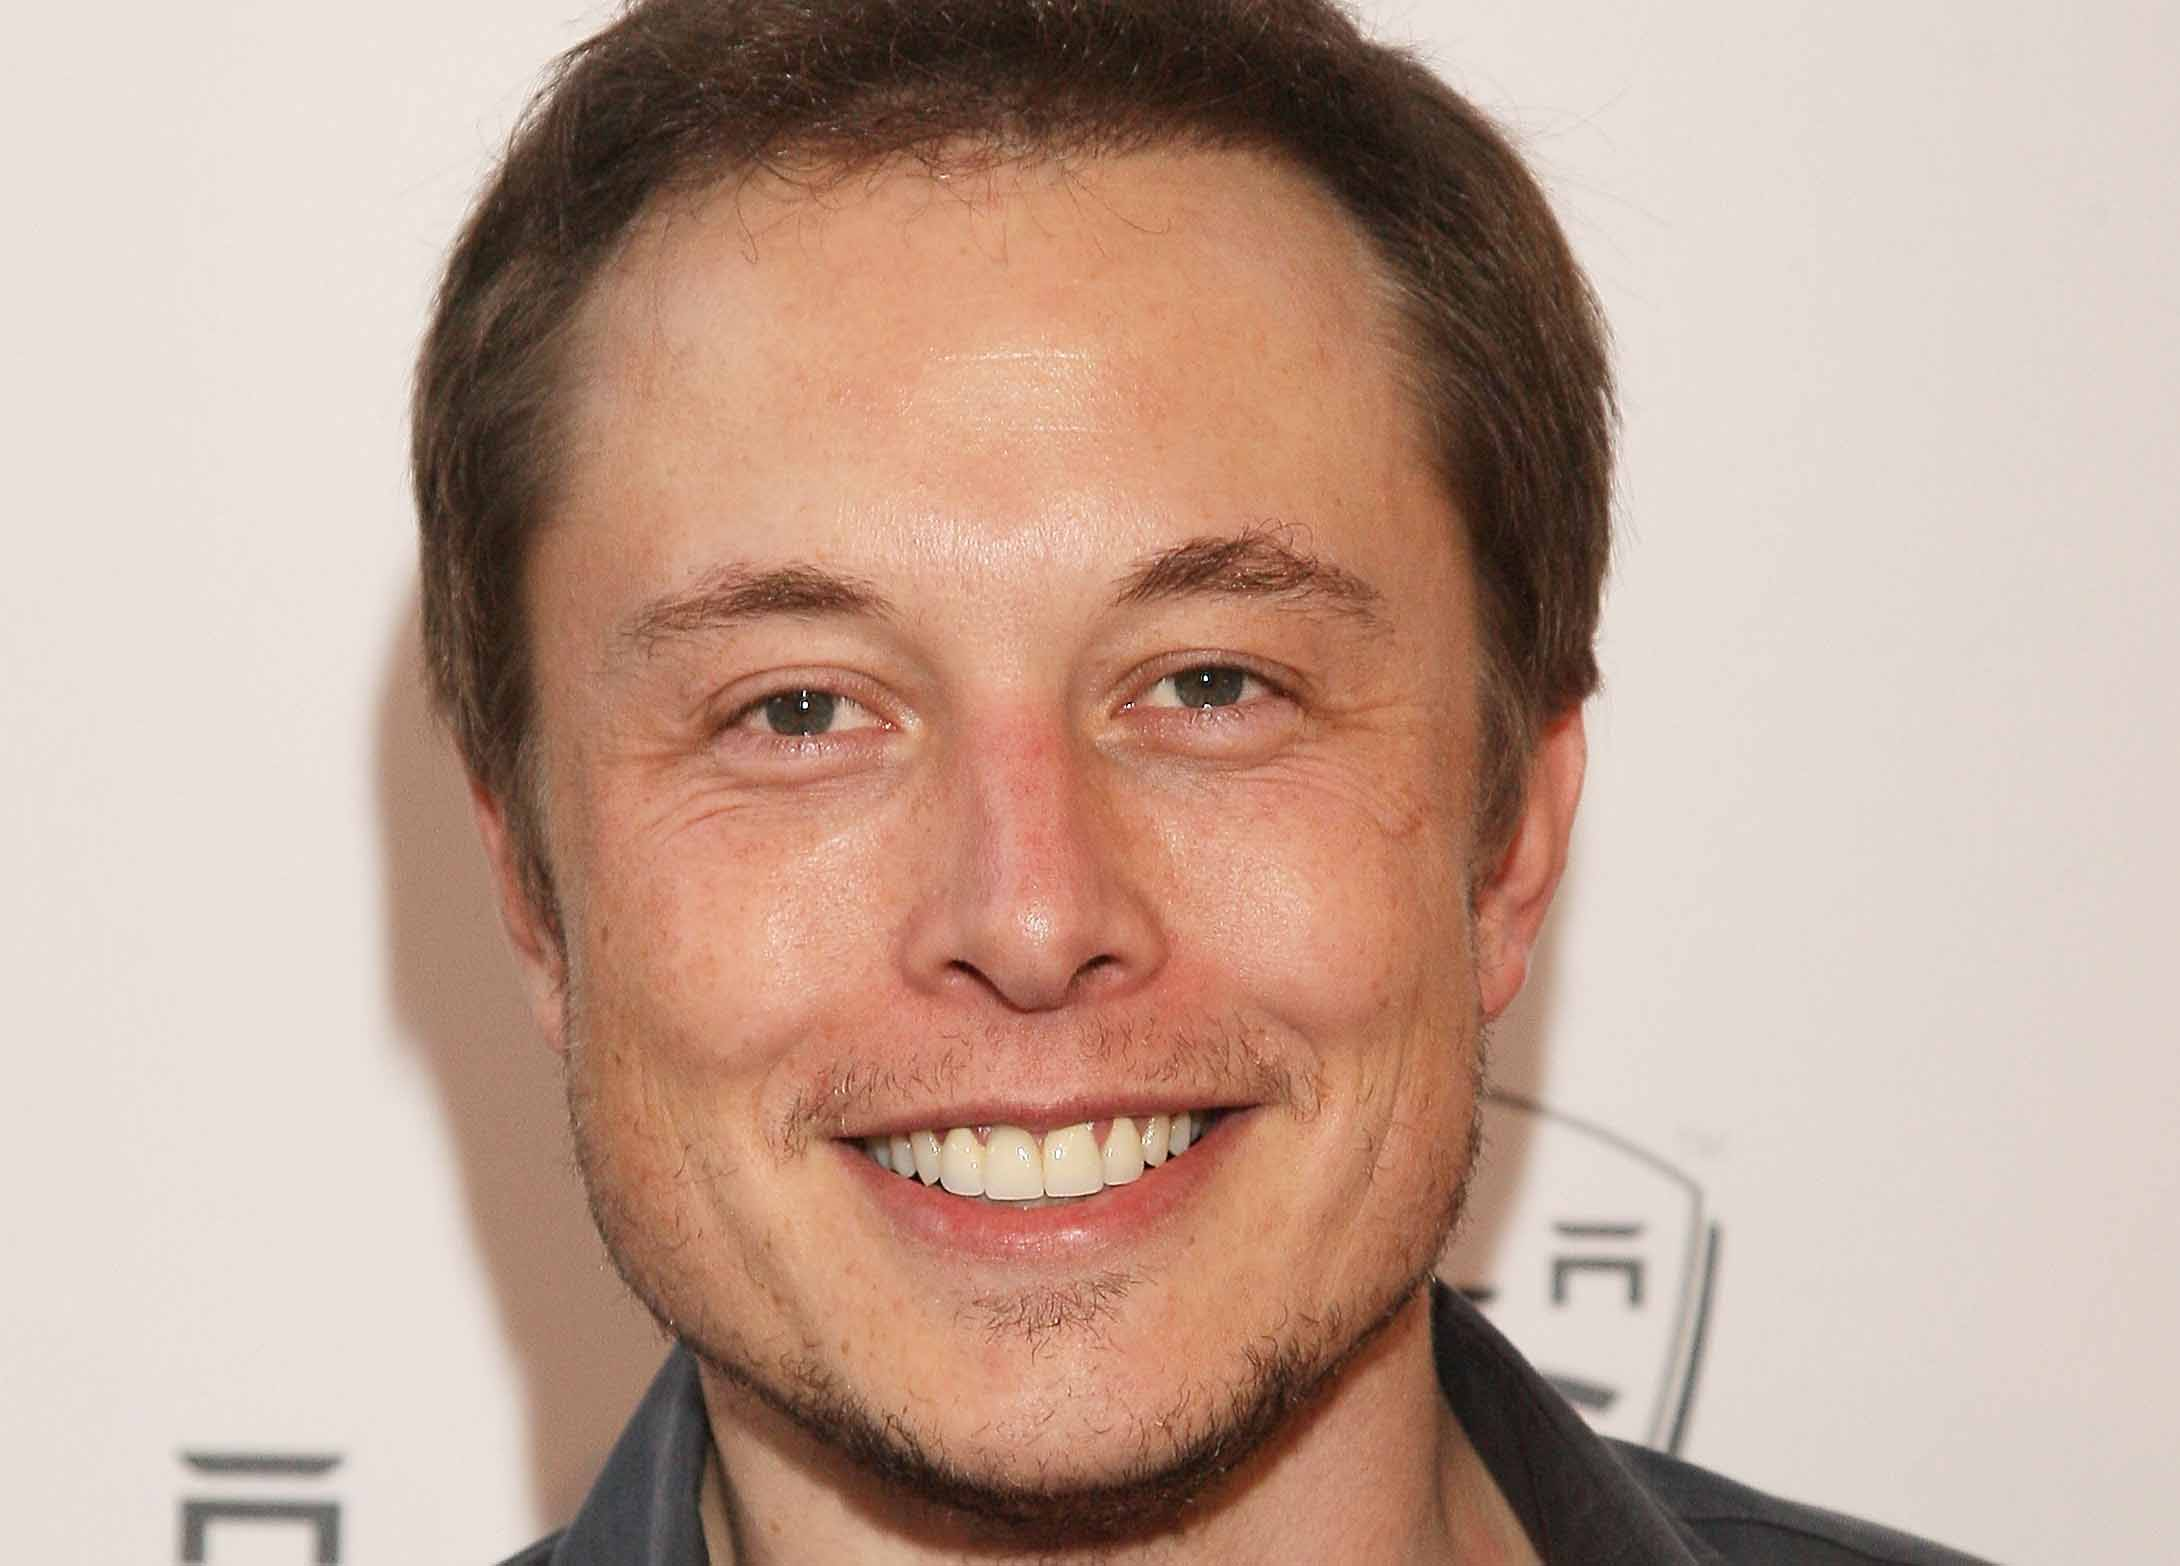 Elon Musk, Tesla CEO & SolarCity Chairman, Reveals Plans To Release Solar Roofs